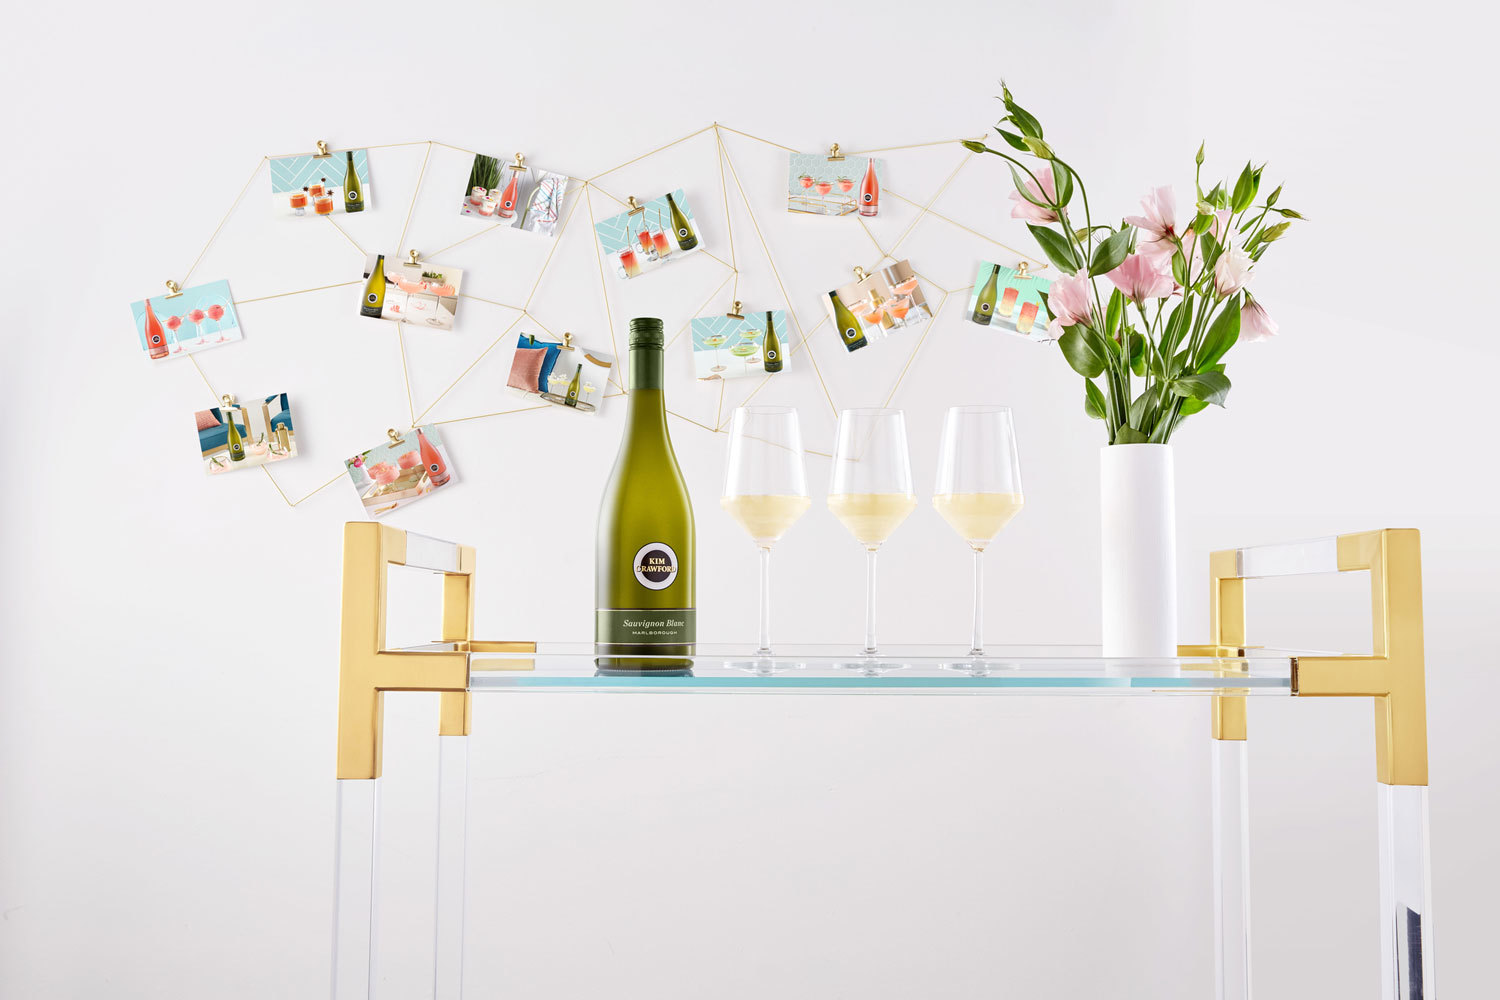 Kim-crawford_moodbild_sauvignon-blanc-with-3-glasses-cocktail-wall